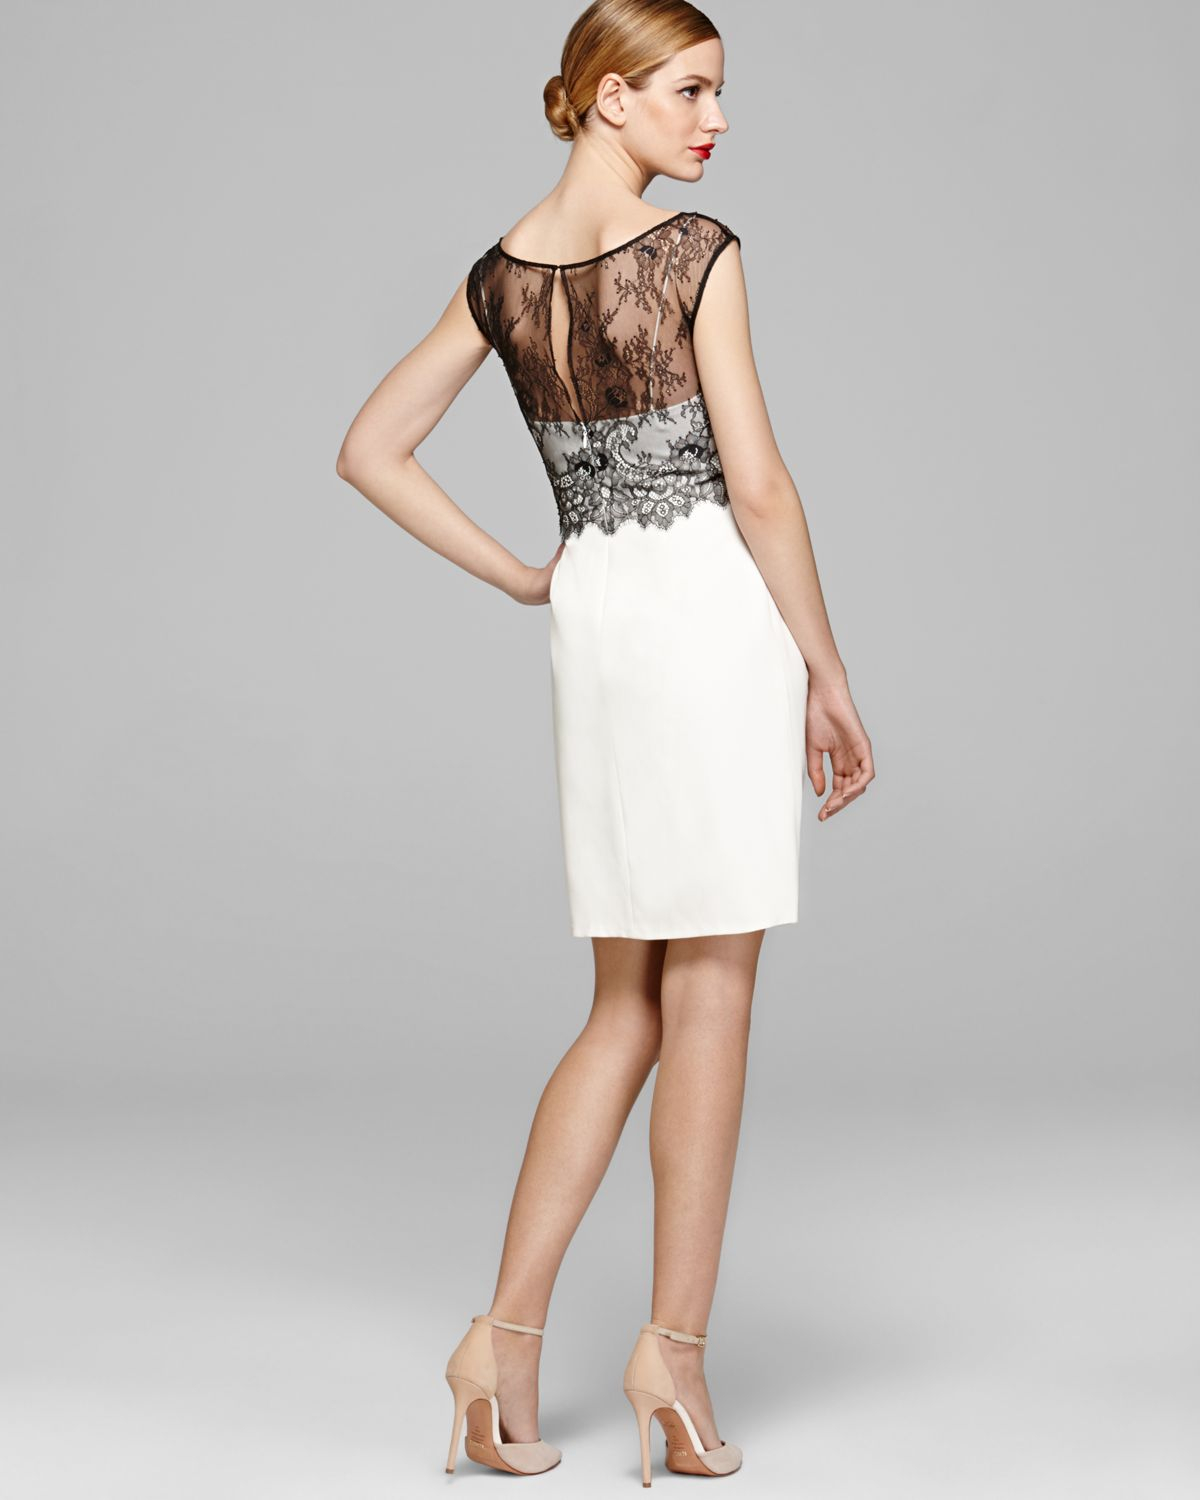 Lyst - Vera Wang Dress Color Block Lace Overlay in White